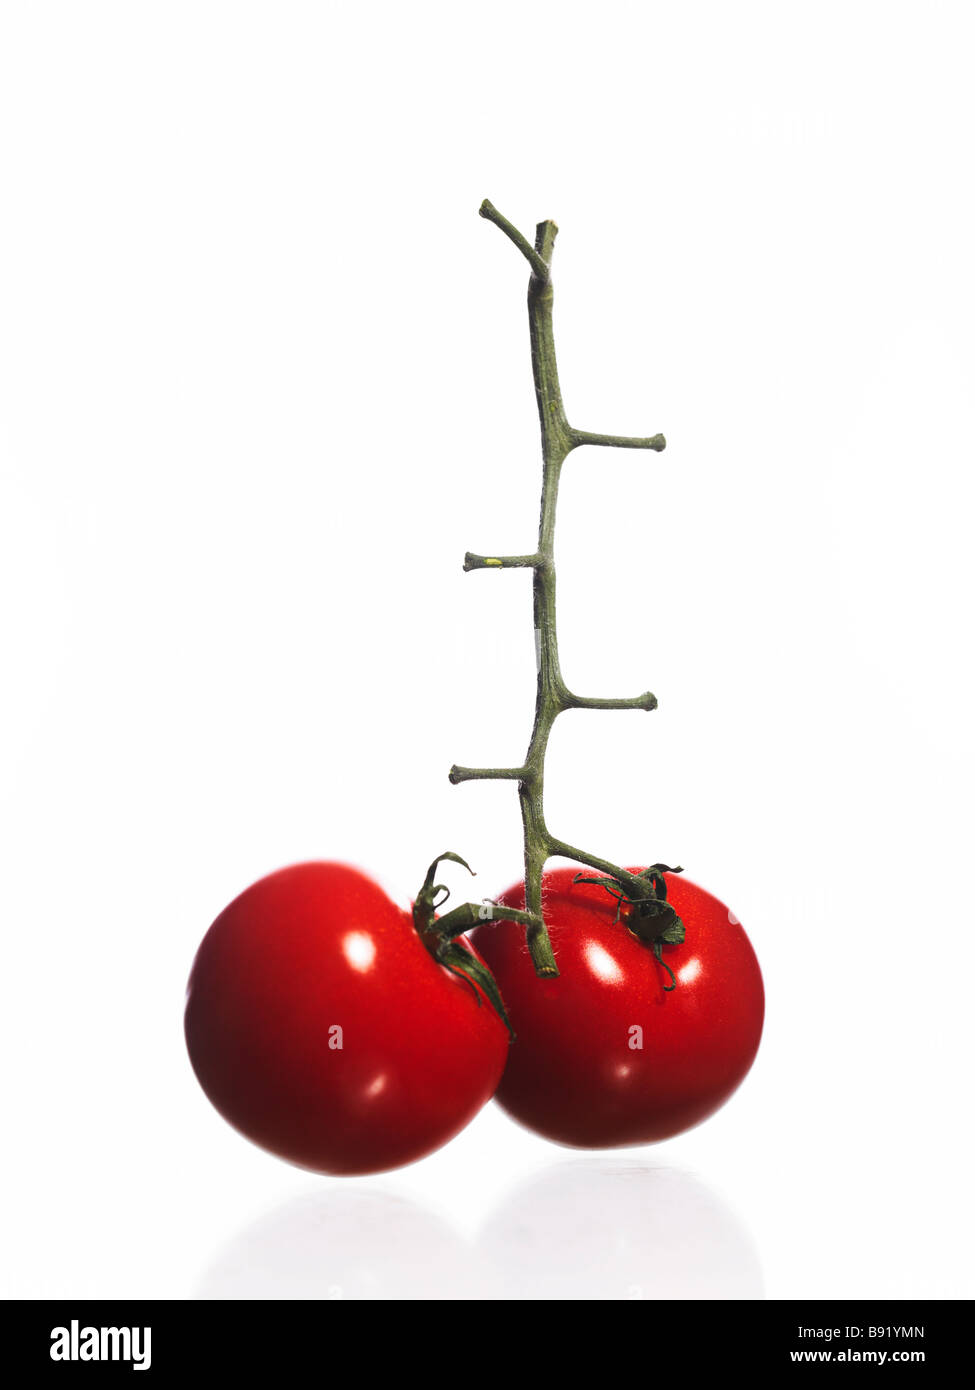 Two tomatoes. - Stock Image